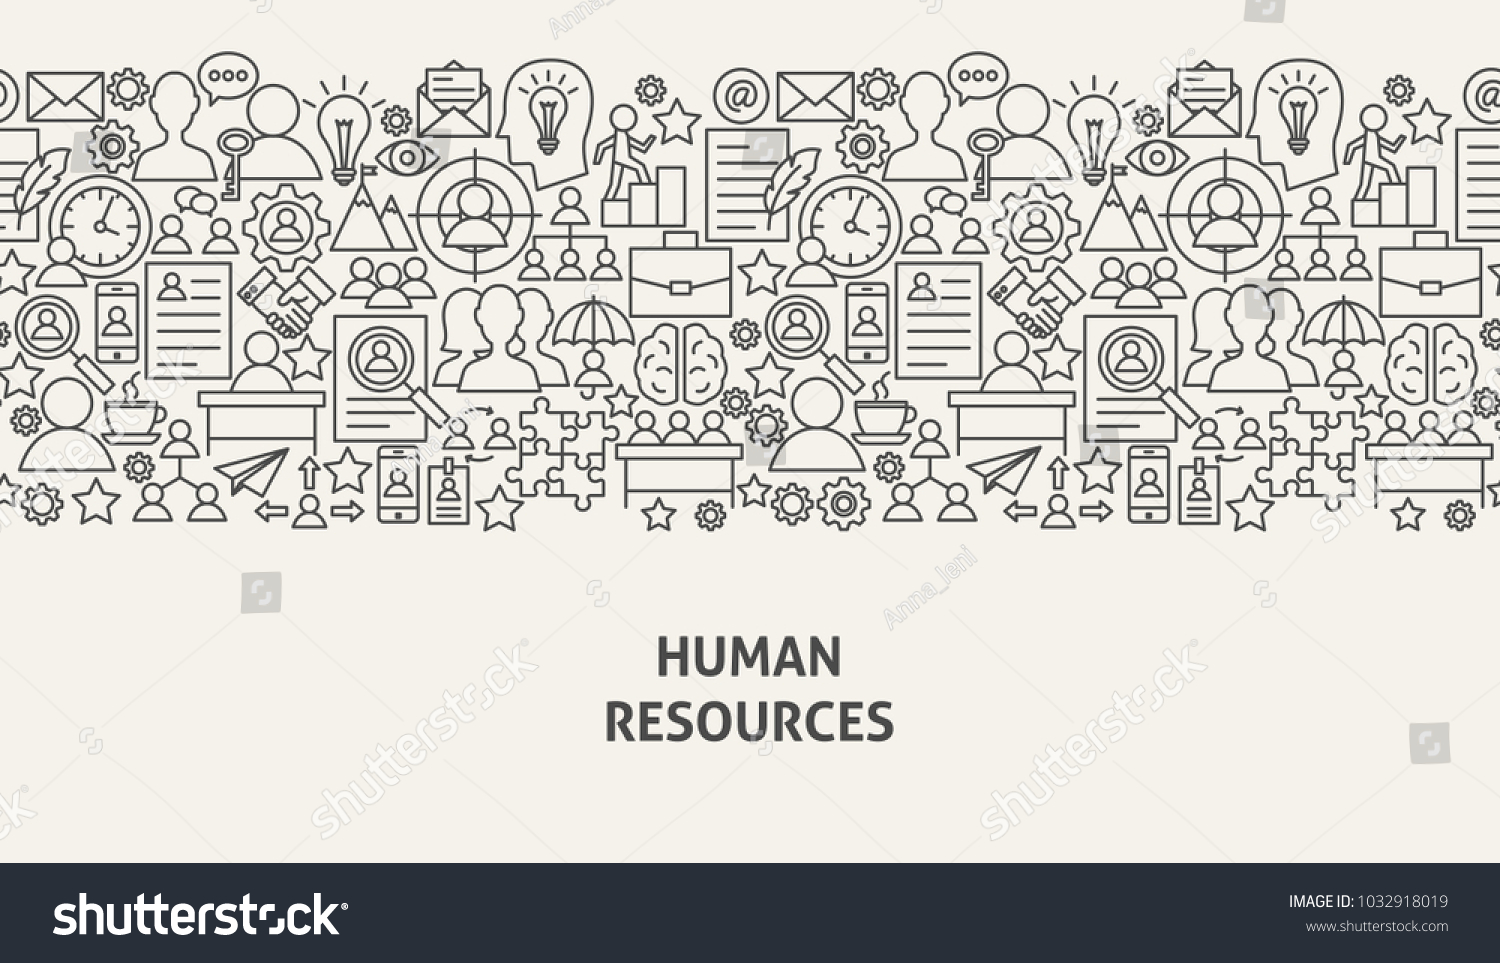 Human Resources Banner Concept Vector Illustration Stock Vector ...